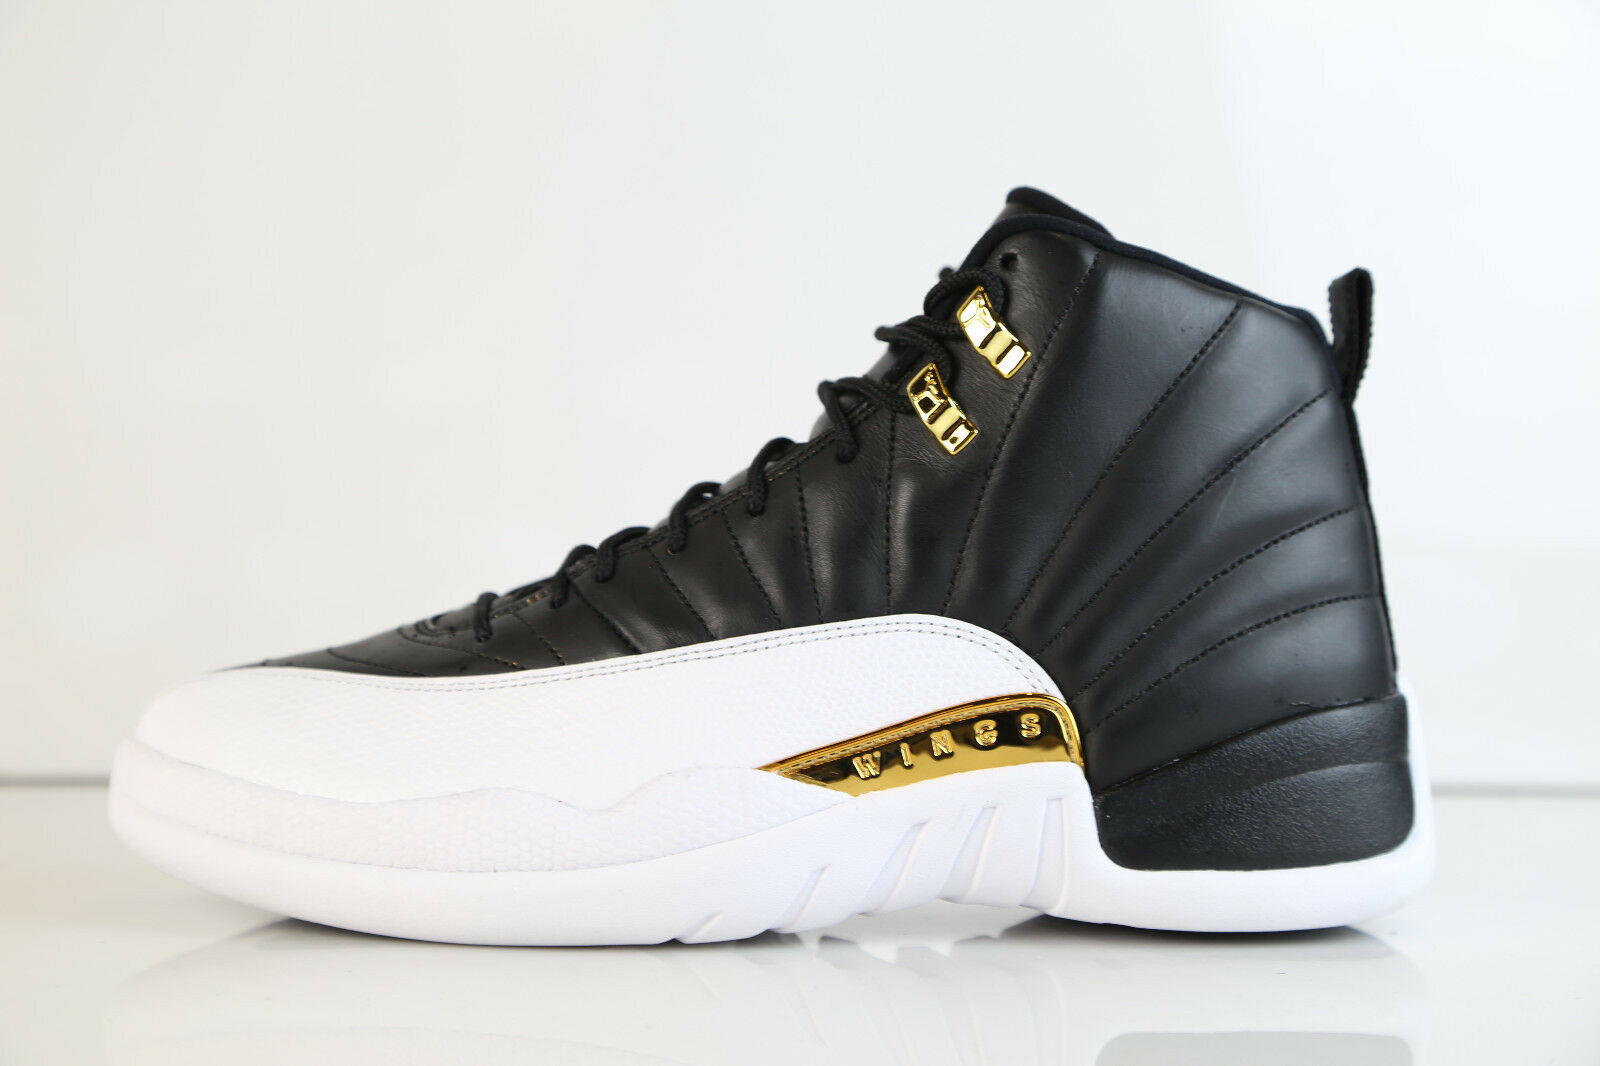 2e13d7de1e277e Nike Air Jordan Retro 12 WINGS Black Metallic gold 848692-033 848692-033  848692